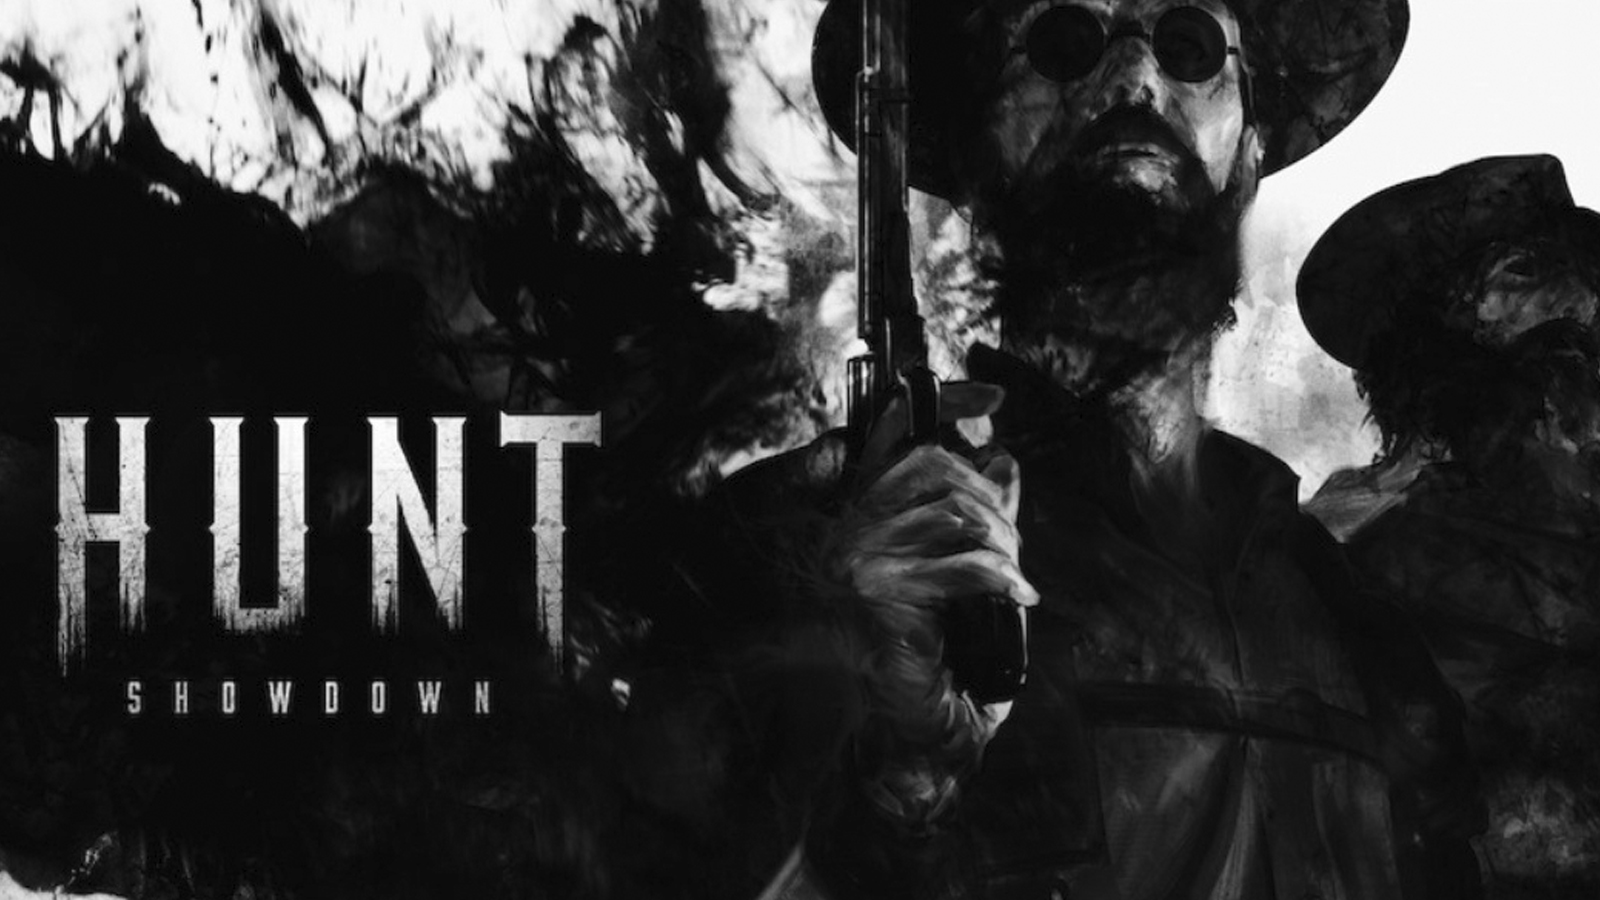 «Hunt: Showdown» se estrena en el Early Access de Steam